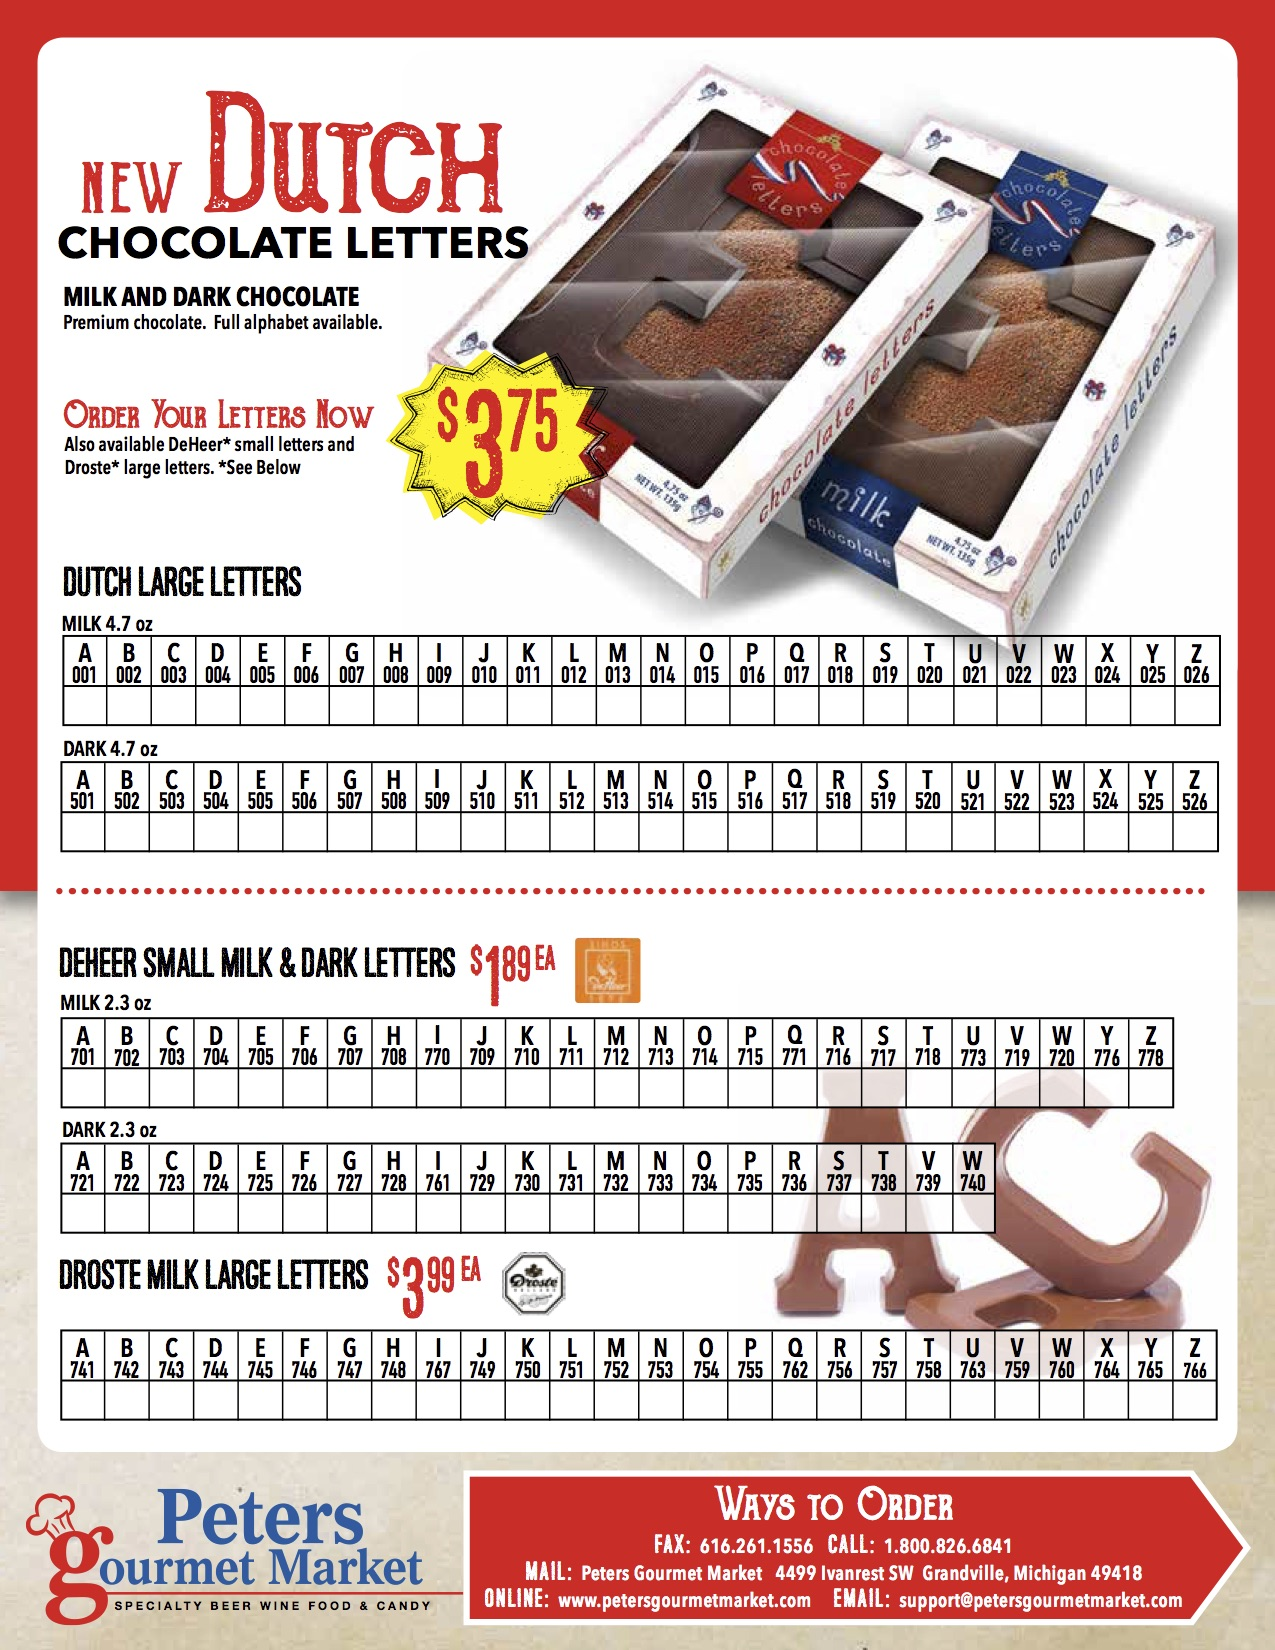 Chocolate Letter order form